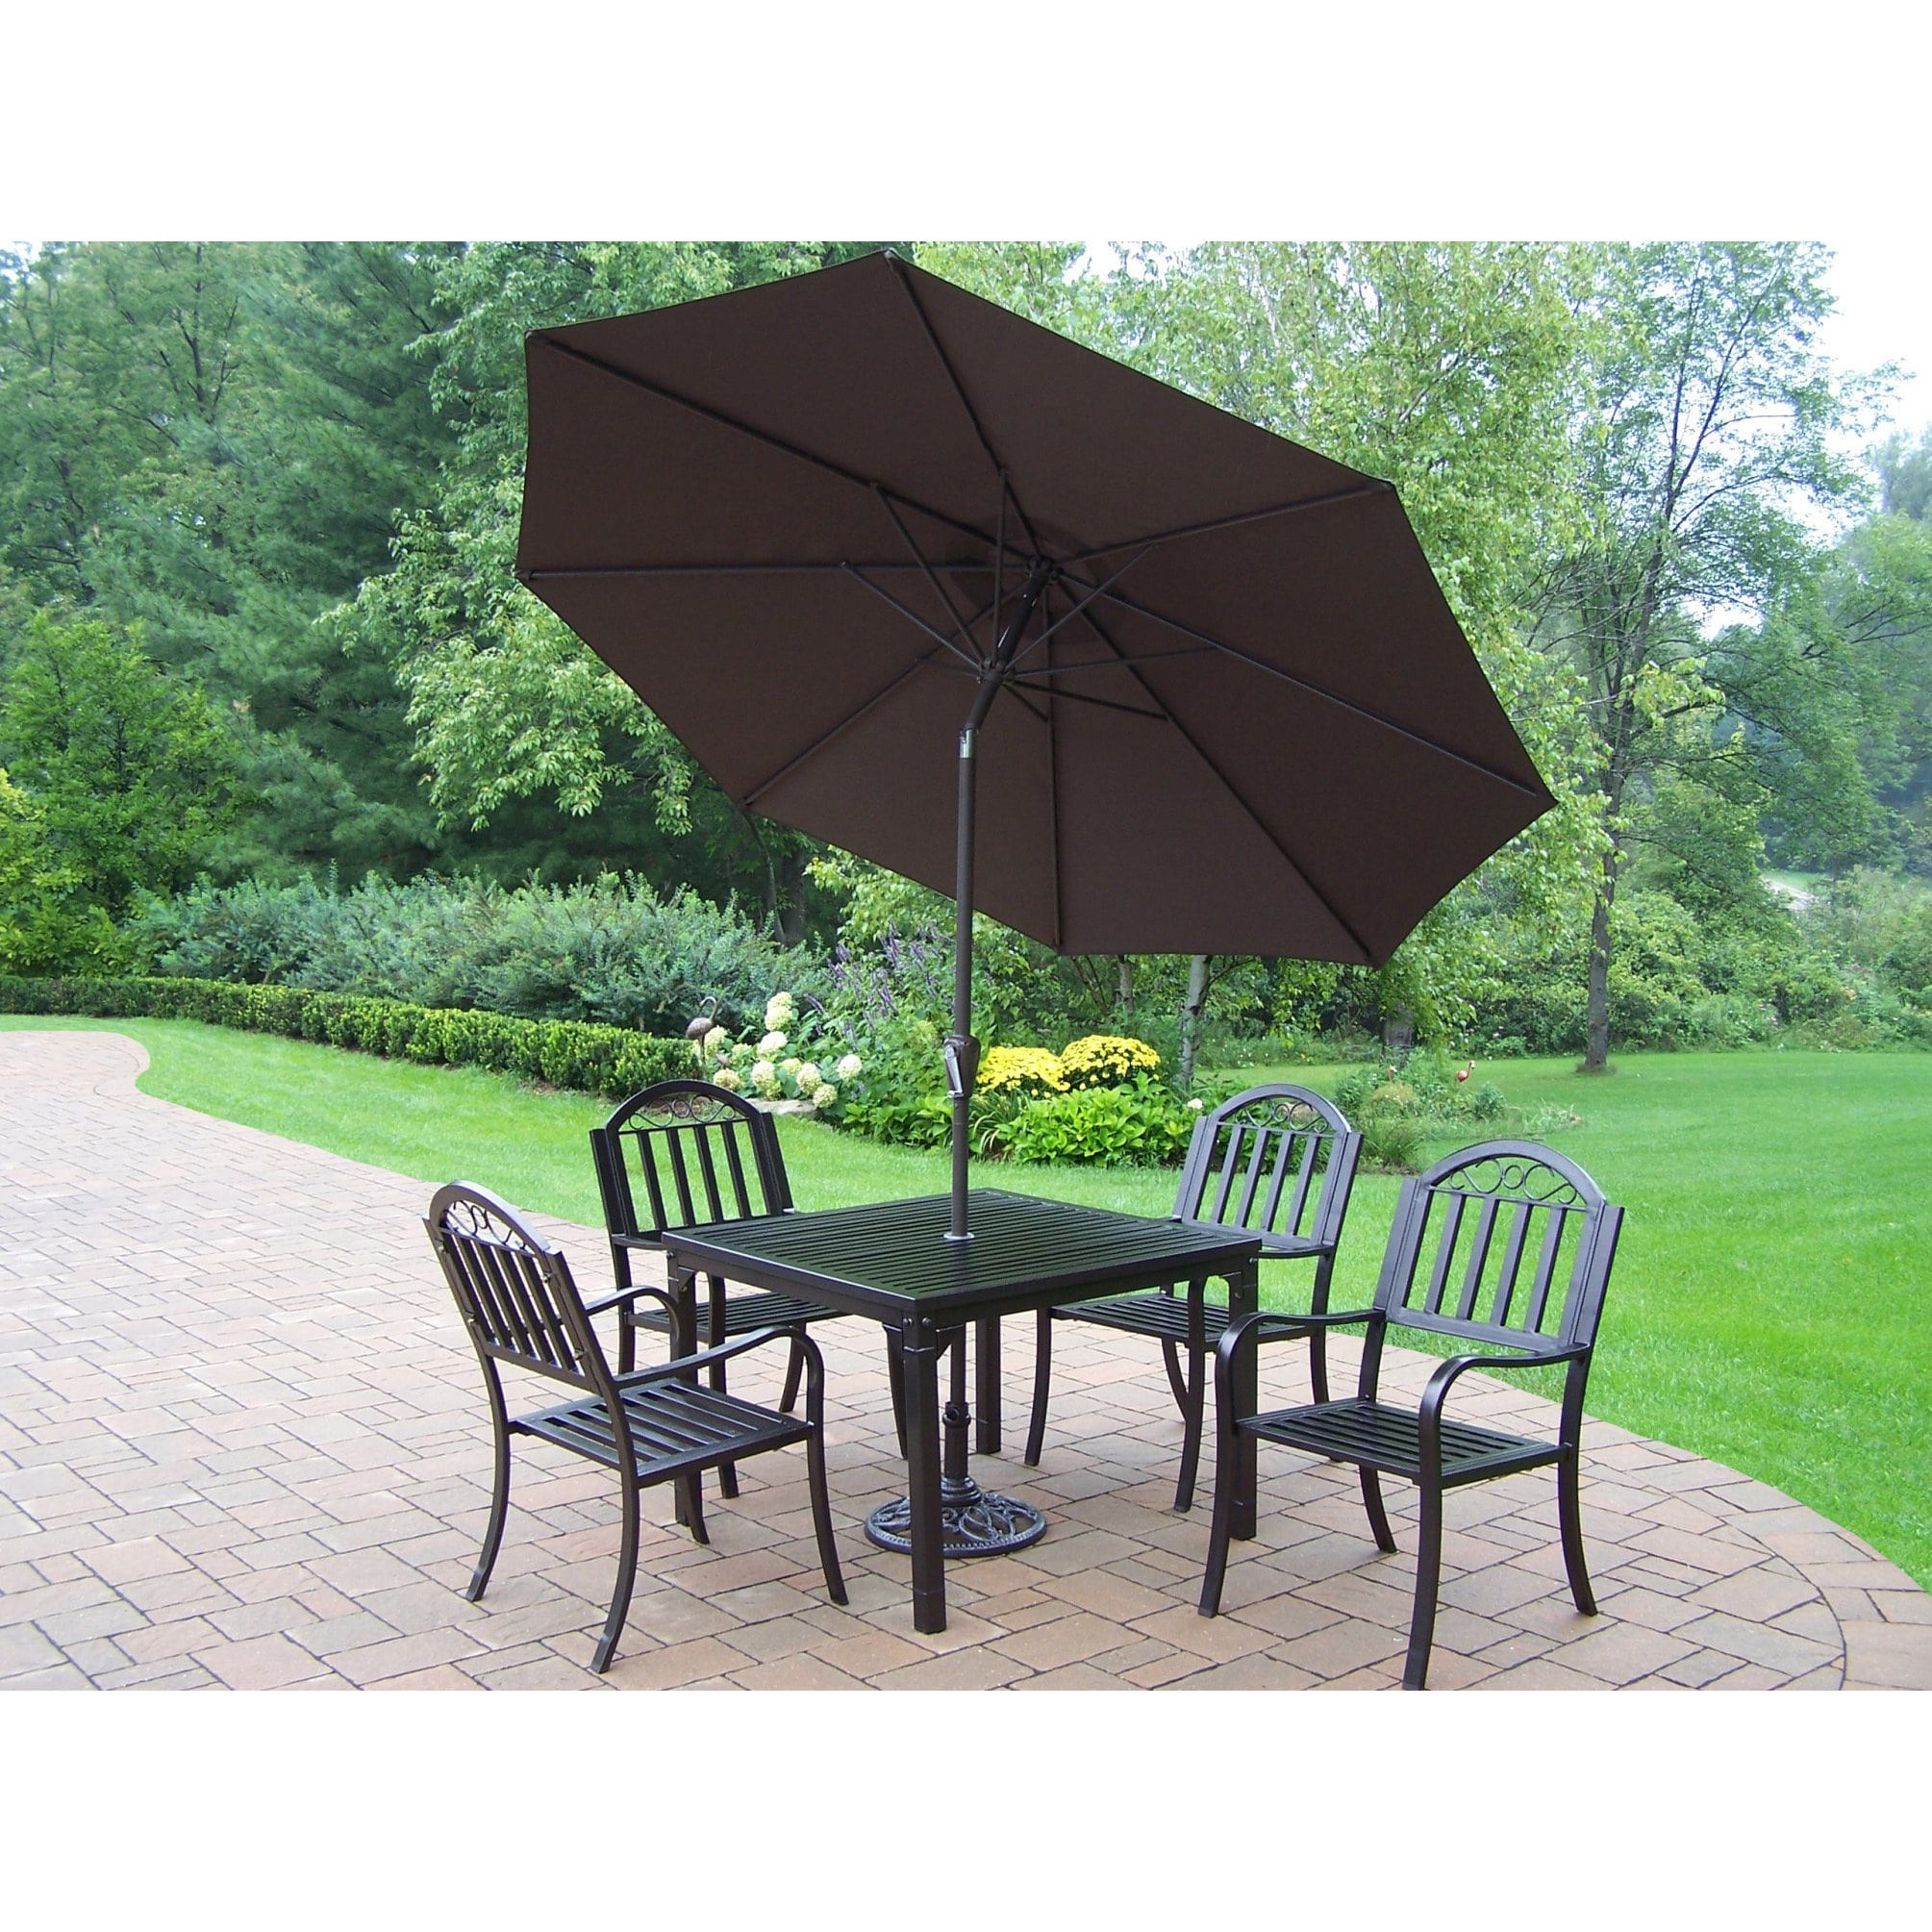 Oakland Living Corporation 7-Piece Outdoor Dining Set with Table, 4 Chairs, 9 ft Brown Umbrella